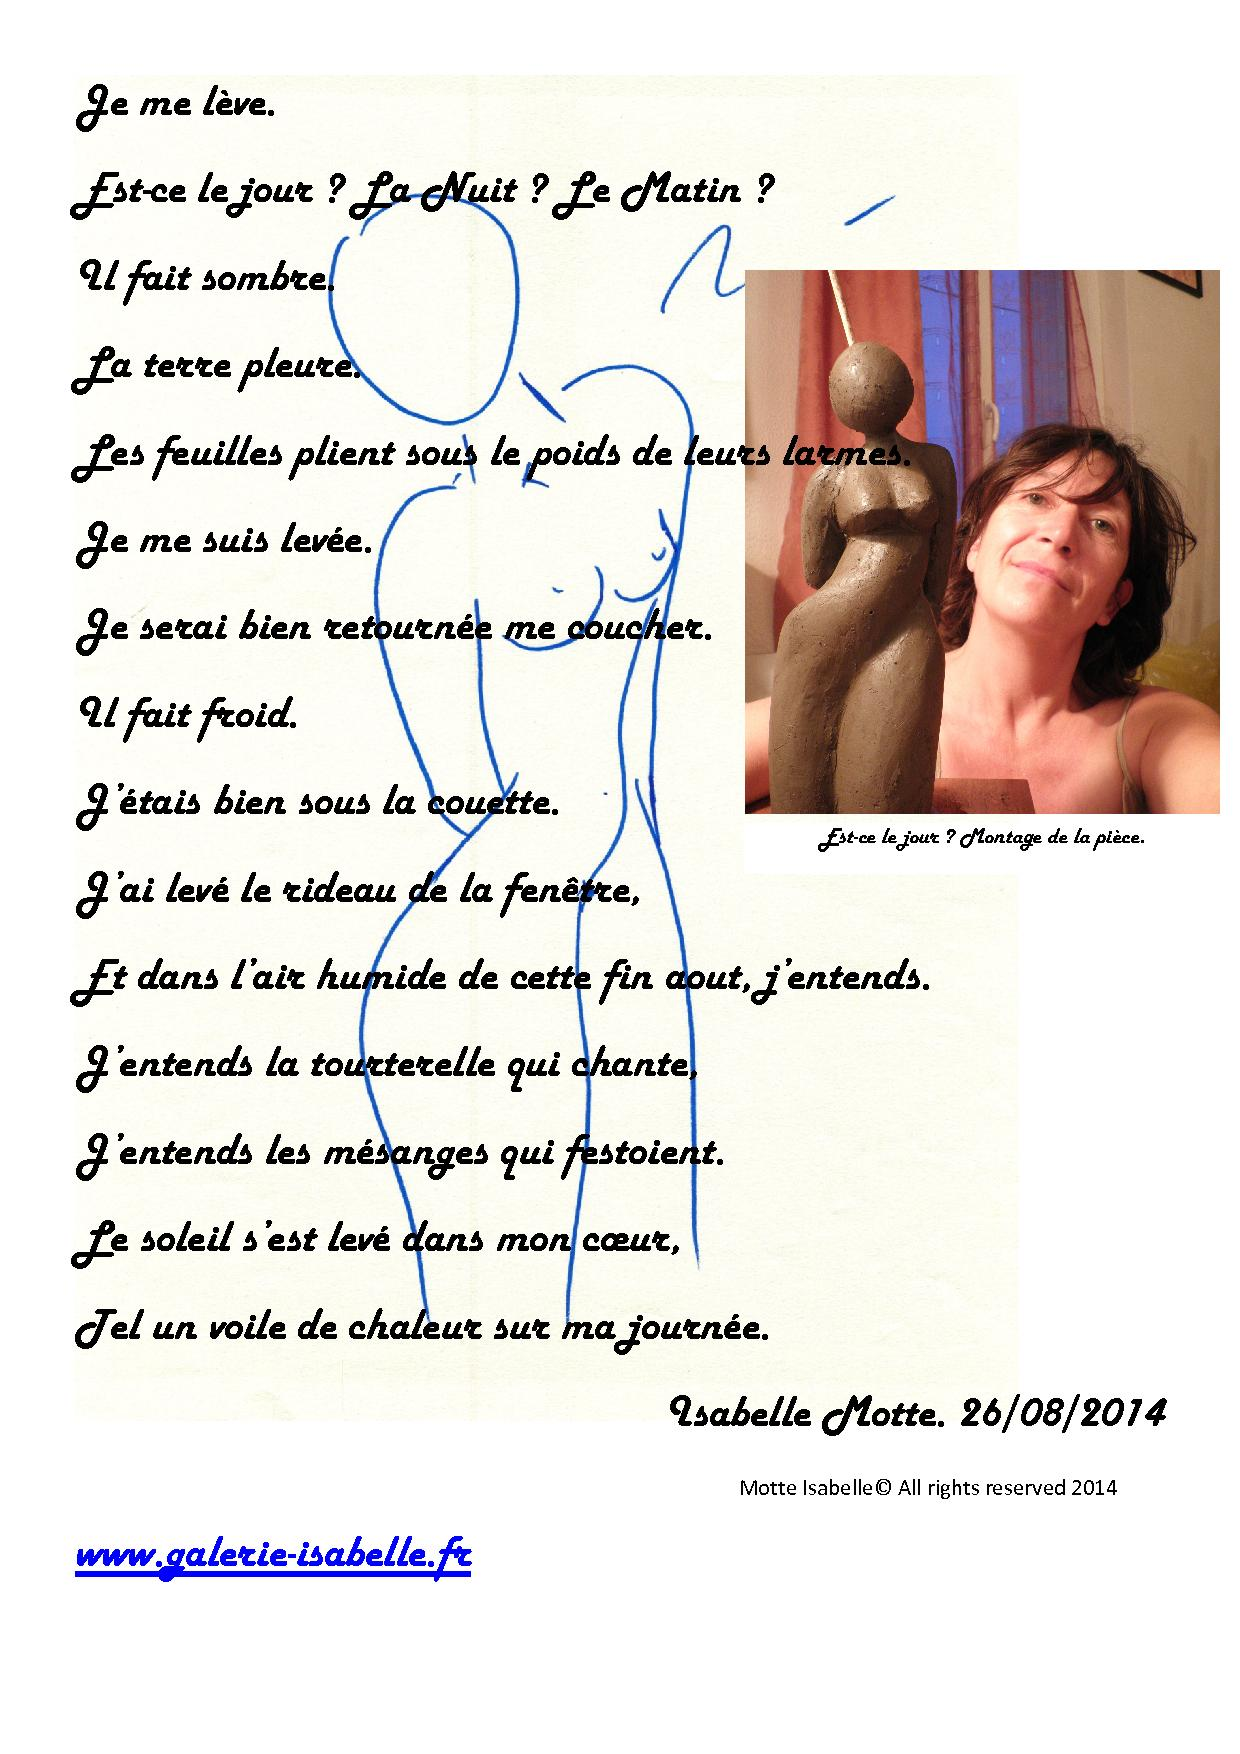 www.galerie-isabele.fr